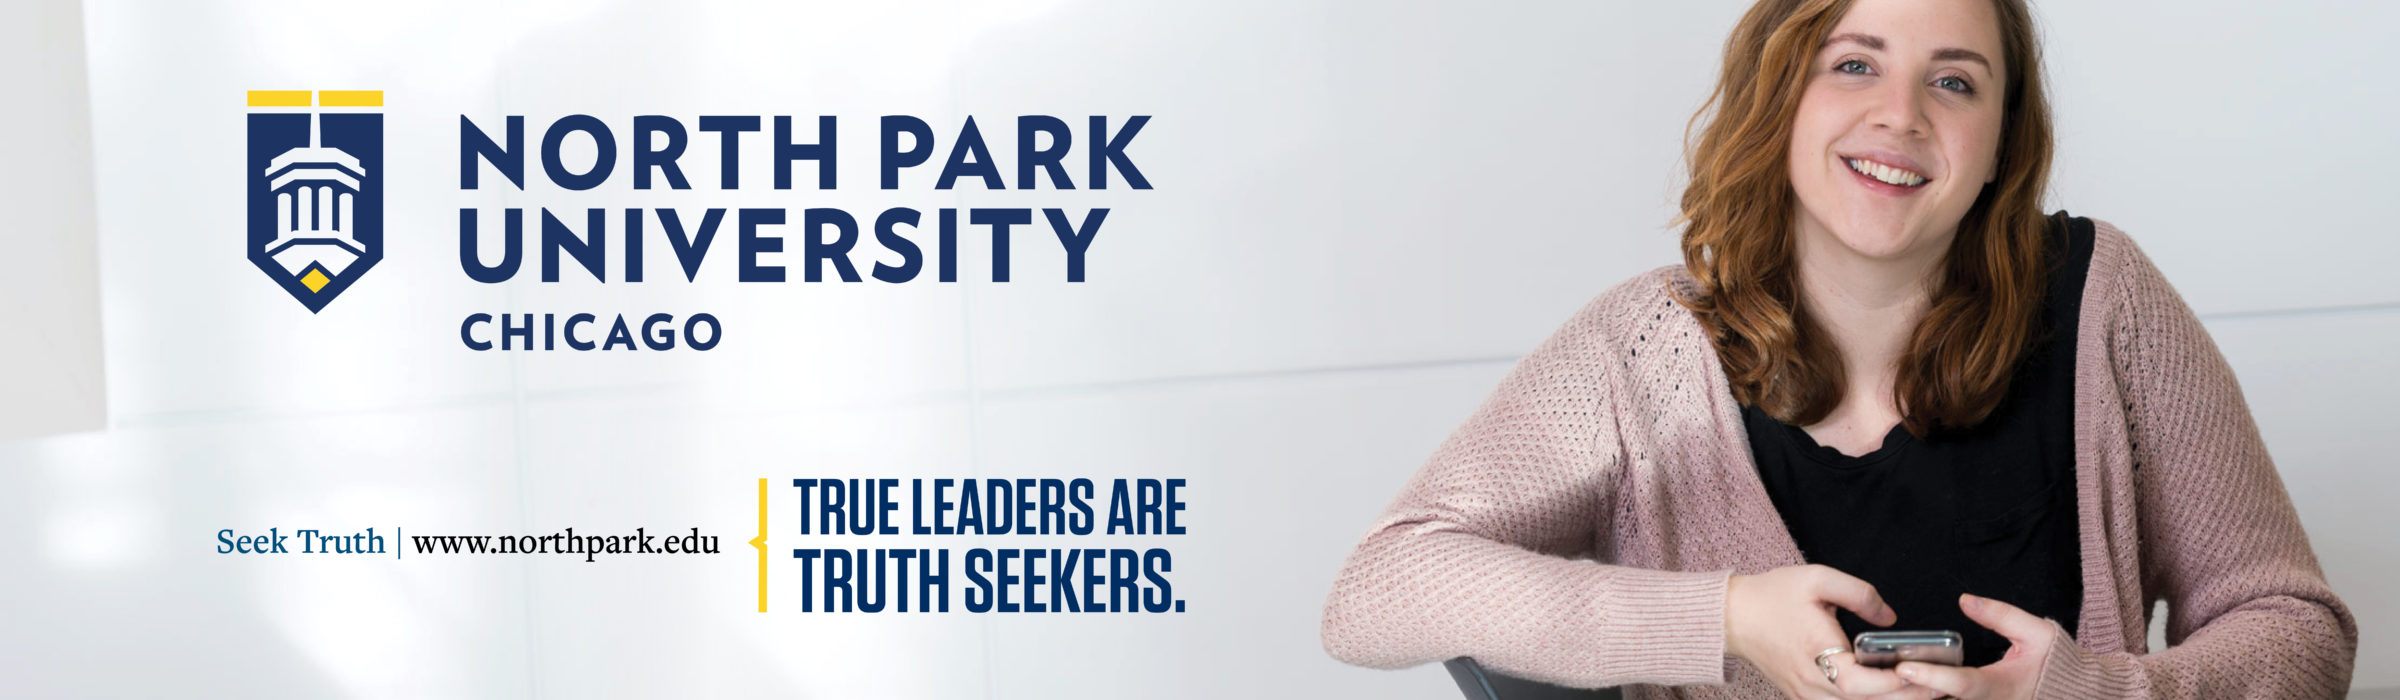 """""""True Leaders are Truth Seekers."""" billboard ad with female student"""